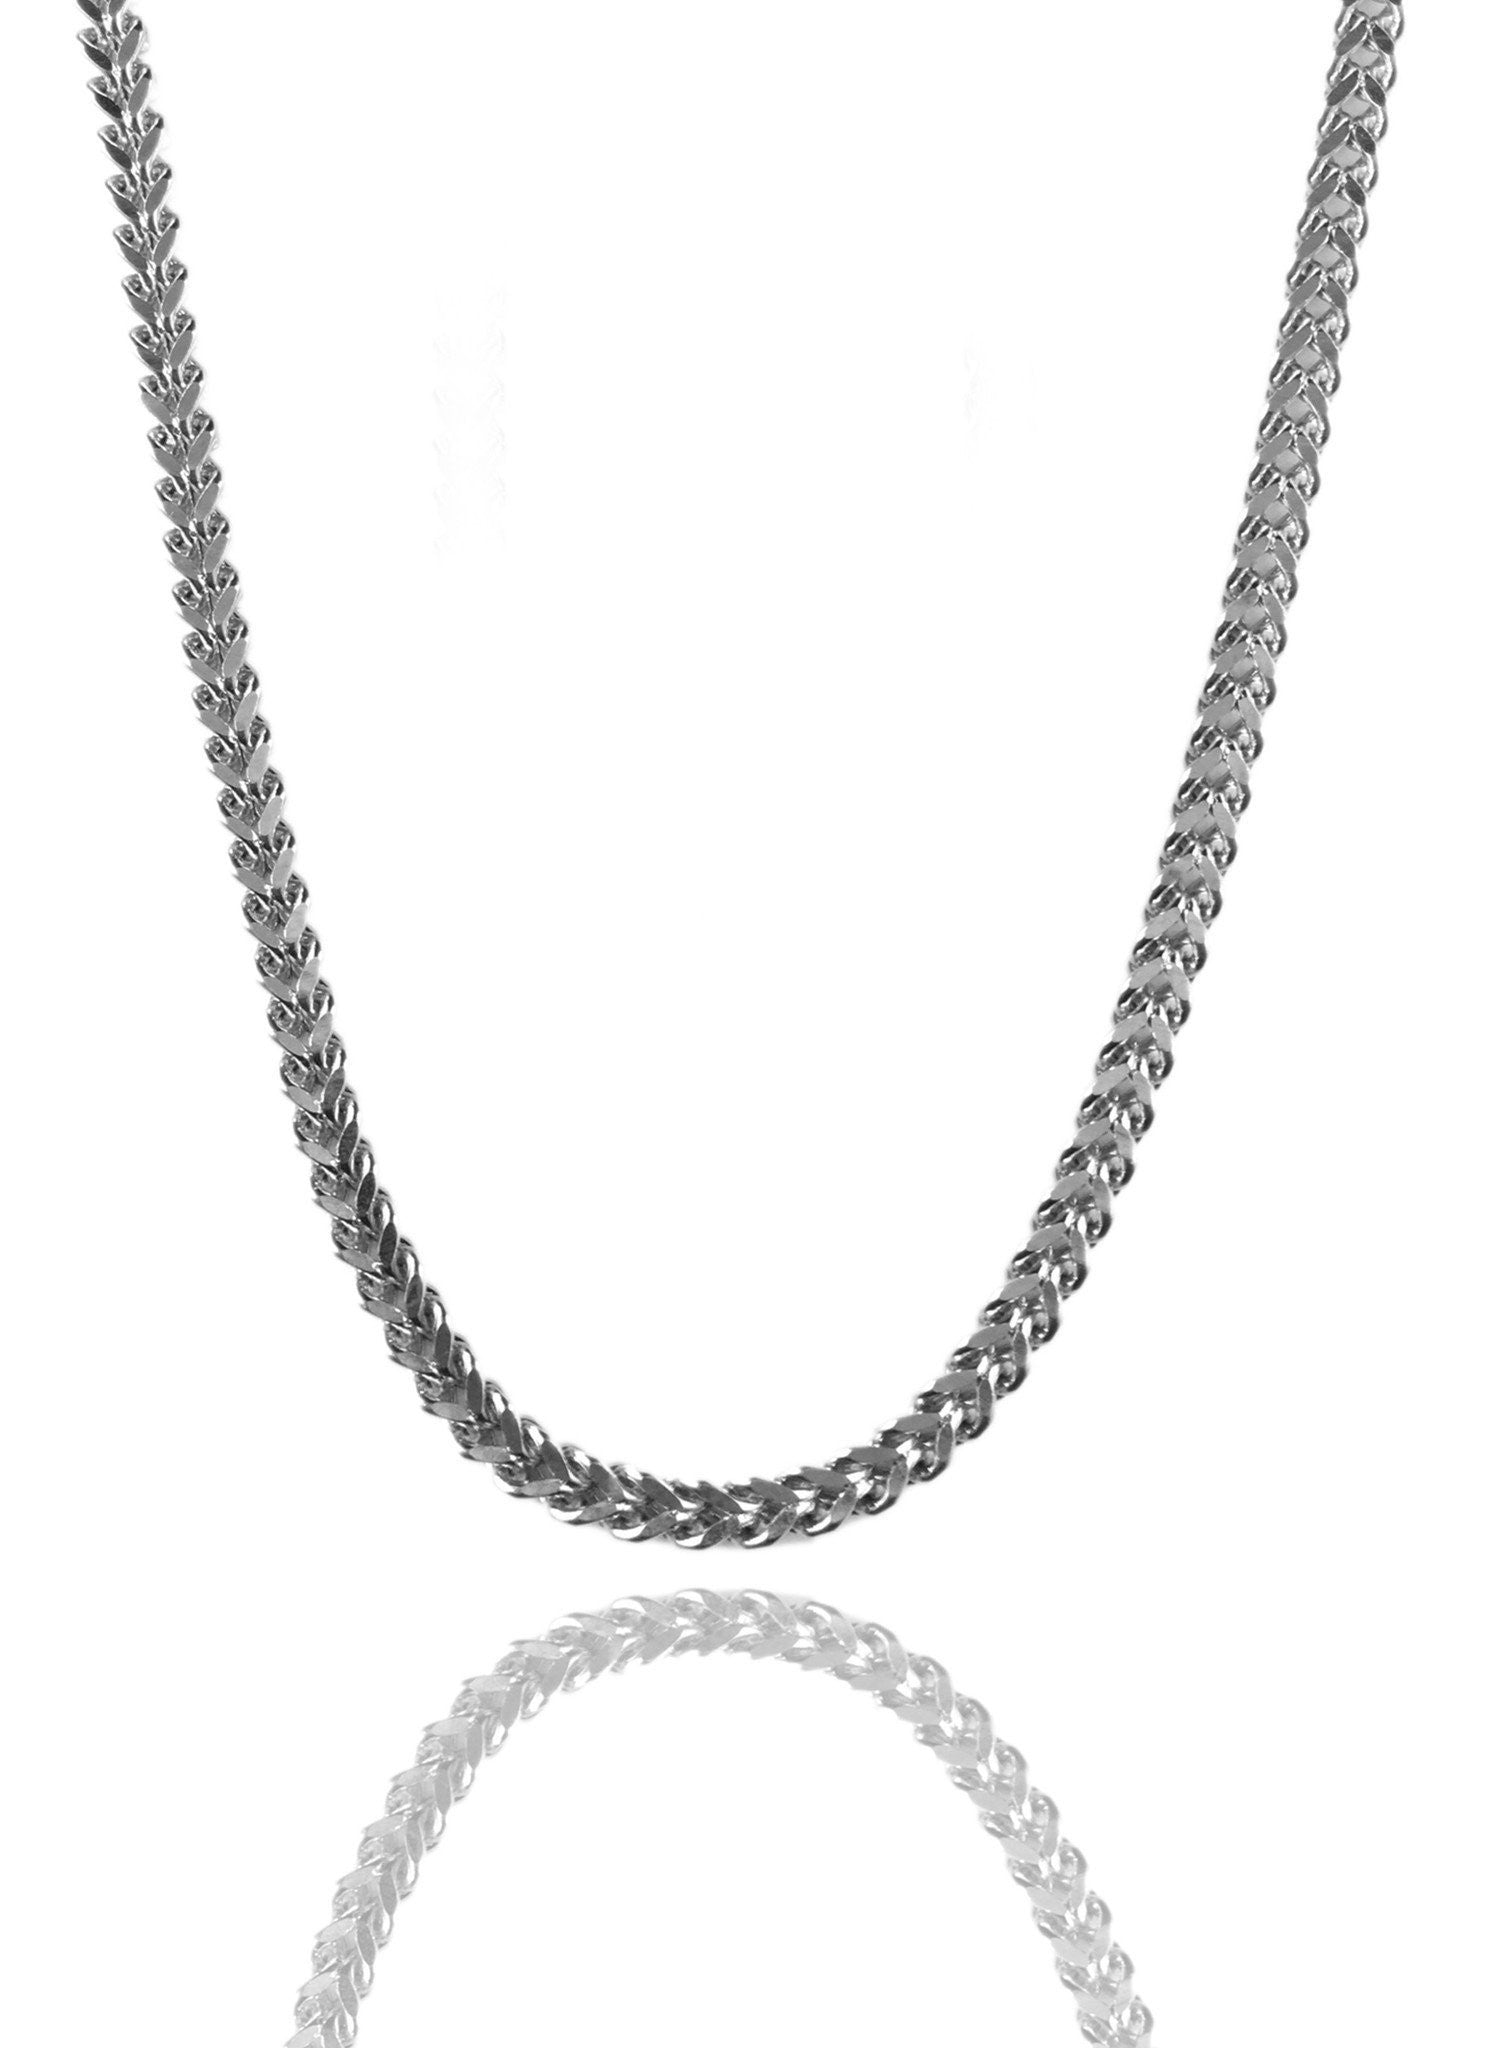 Necklace - The Magnus Chain X Stainless